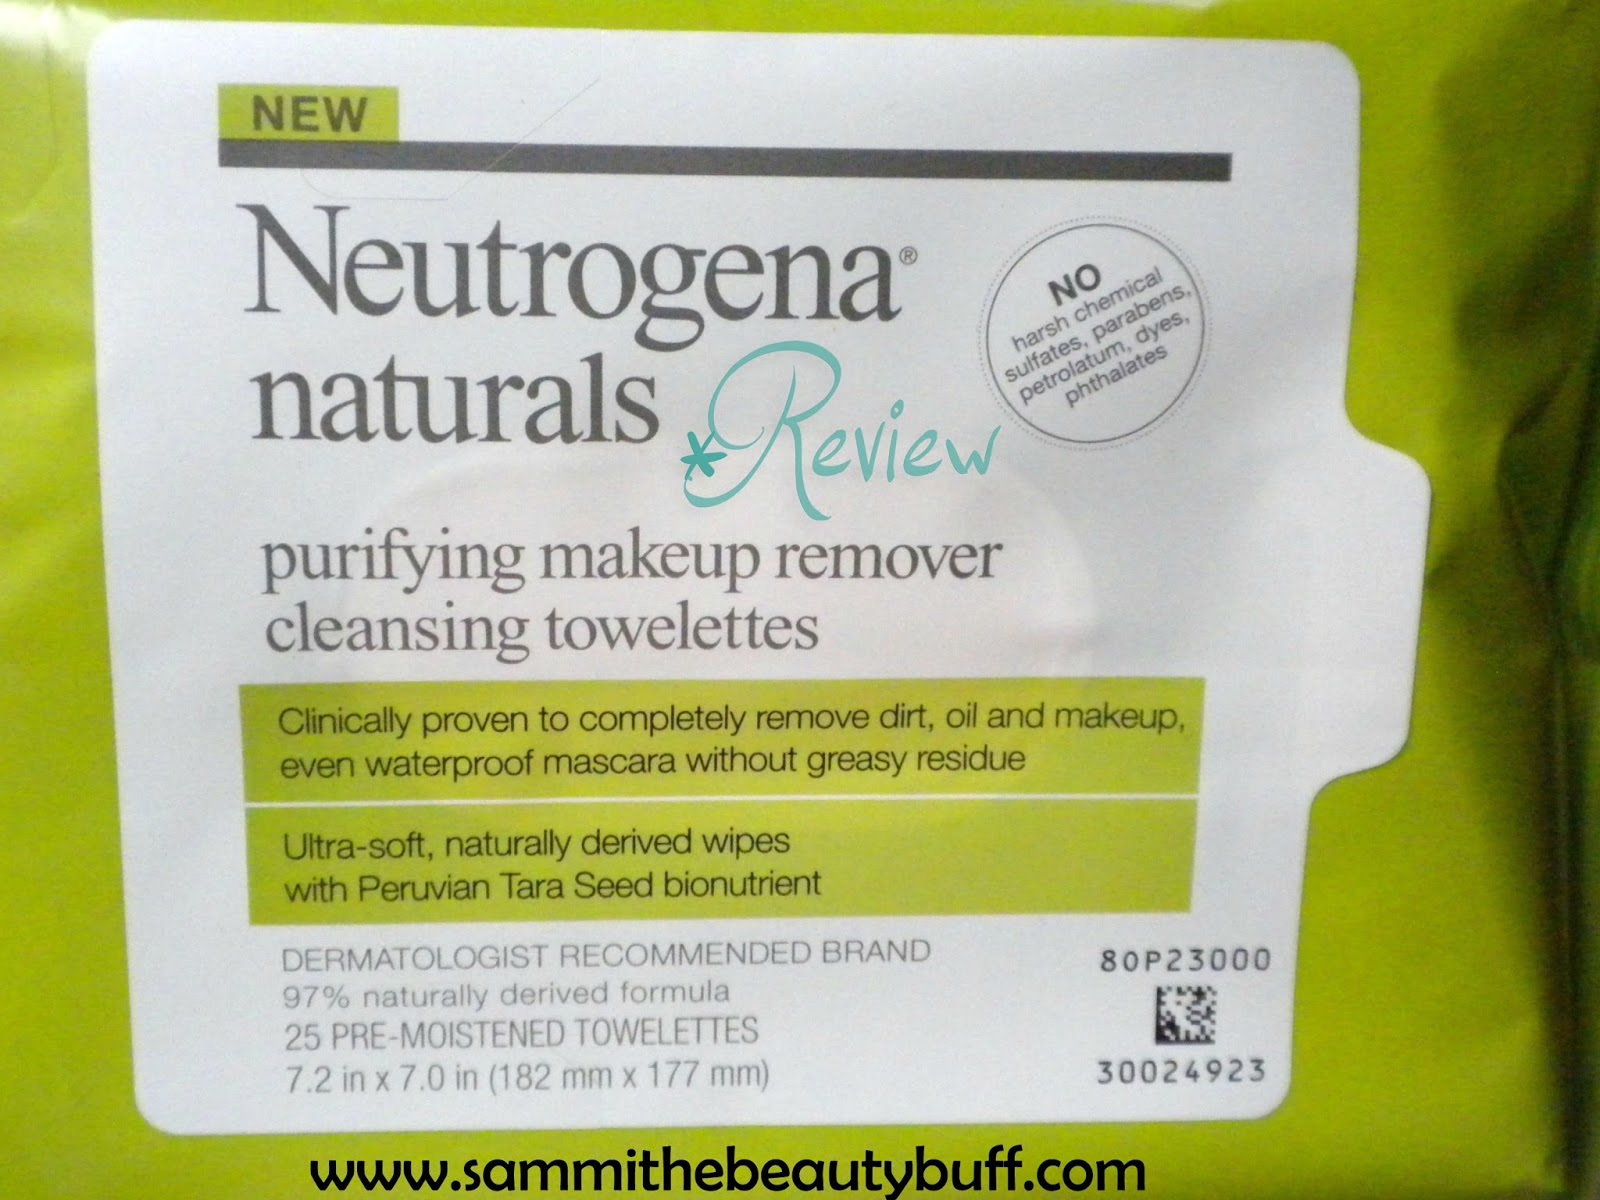 Review: Neutrogena Naturals Purifying Makeup Remover Cleansing Wipes